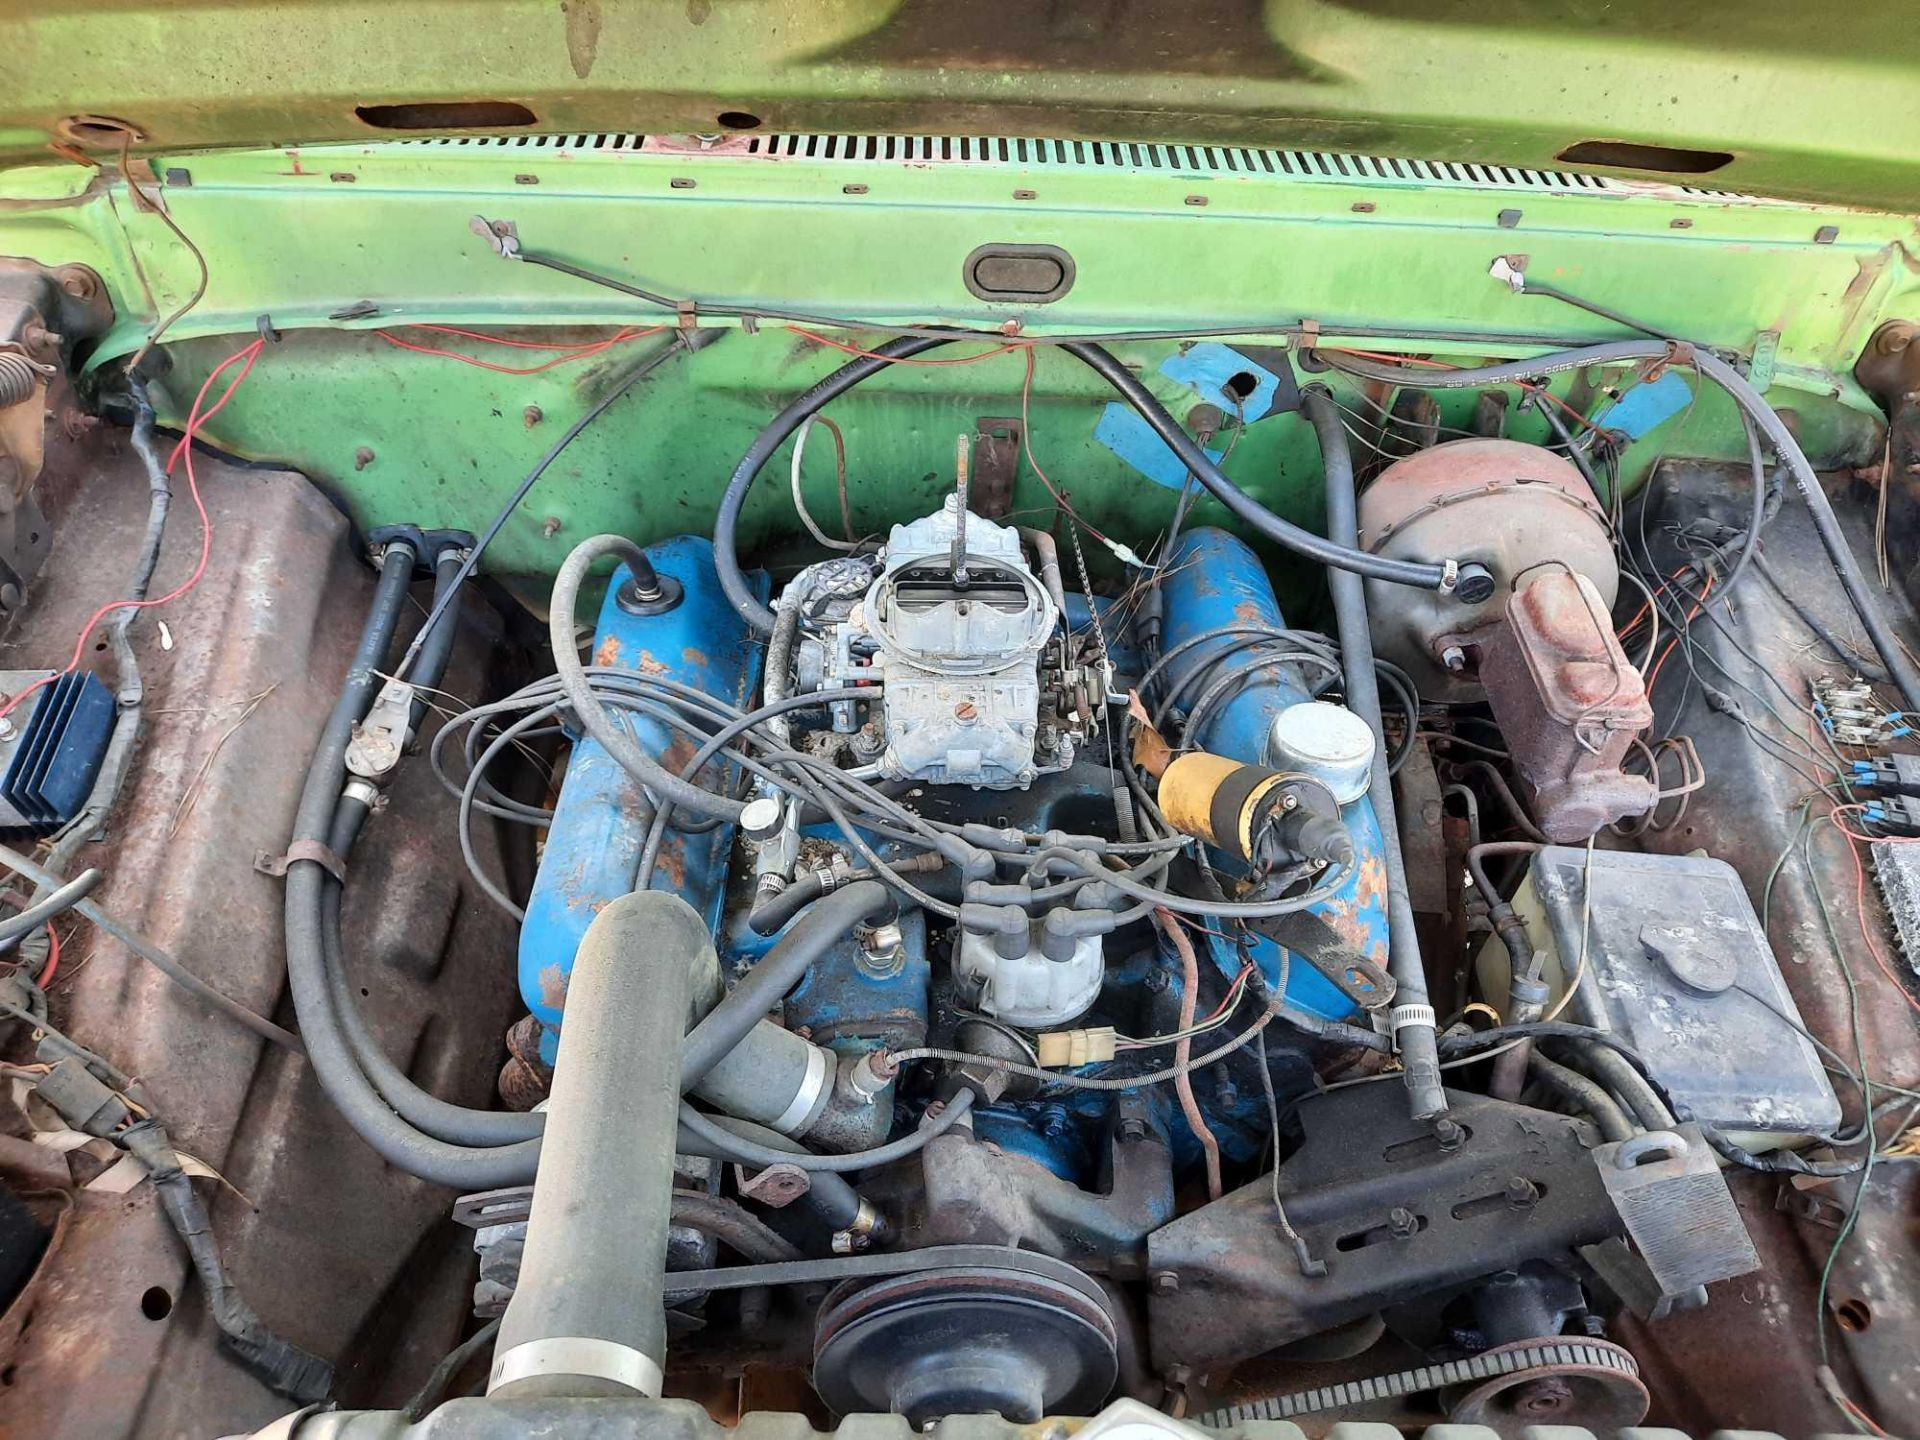 1972 FORD CREW CAB 350 PICK UP TRUCK (INOPERABLE) - Image 10 of 15